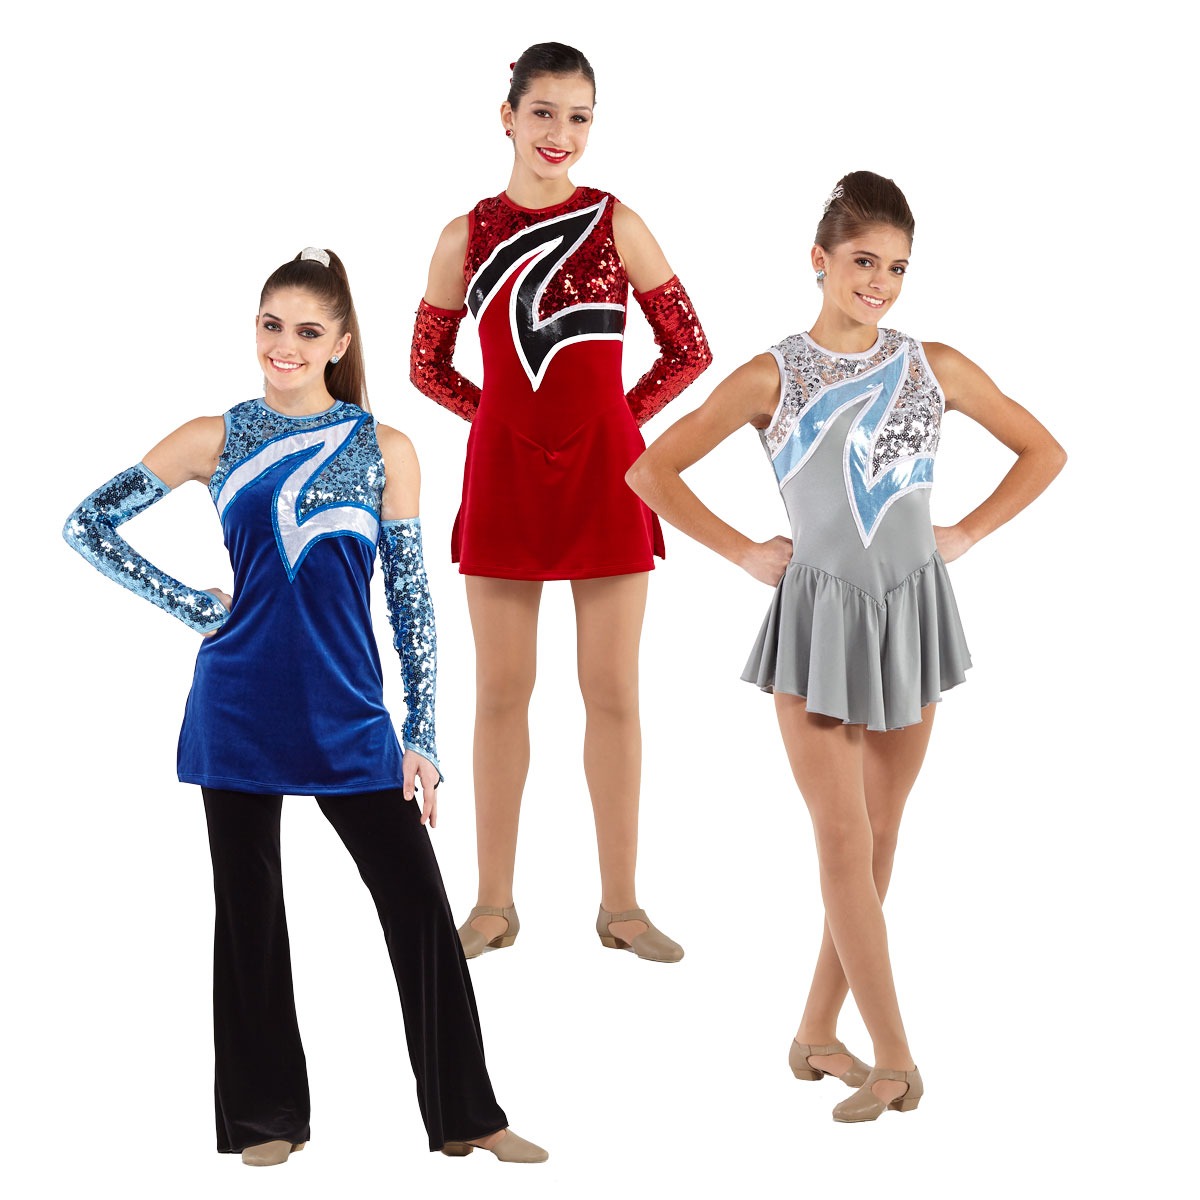 Guard Uniforms: Style 1903